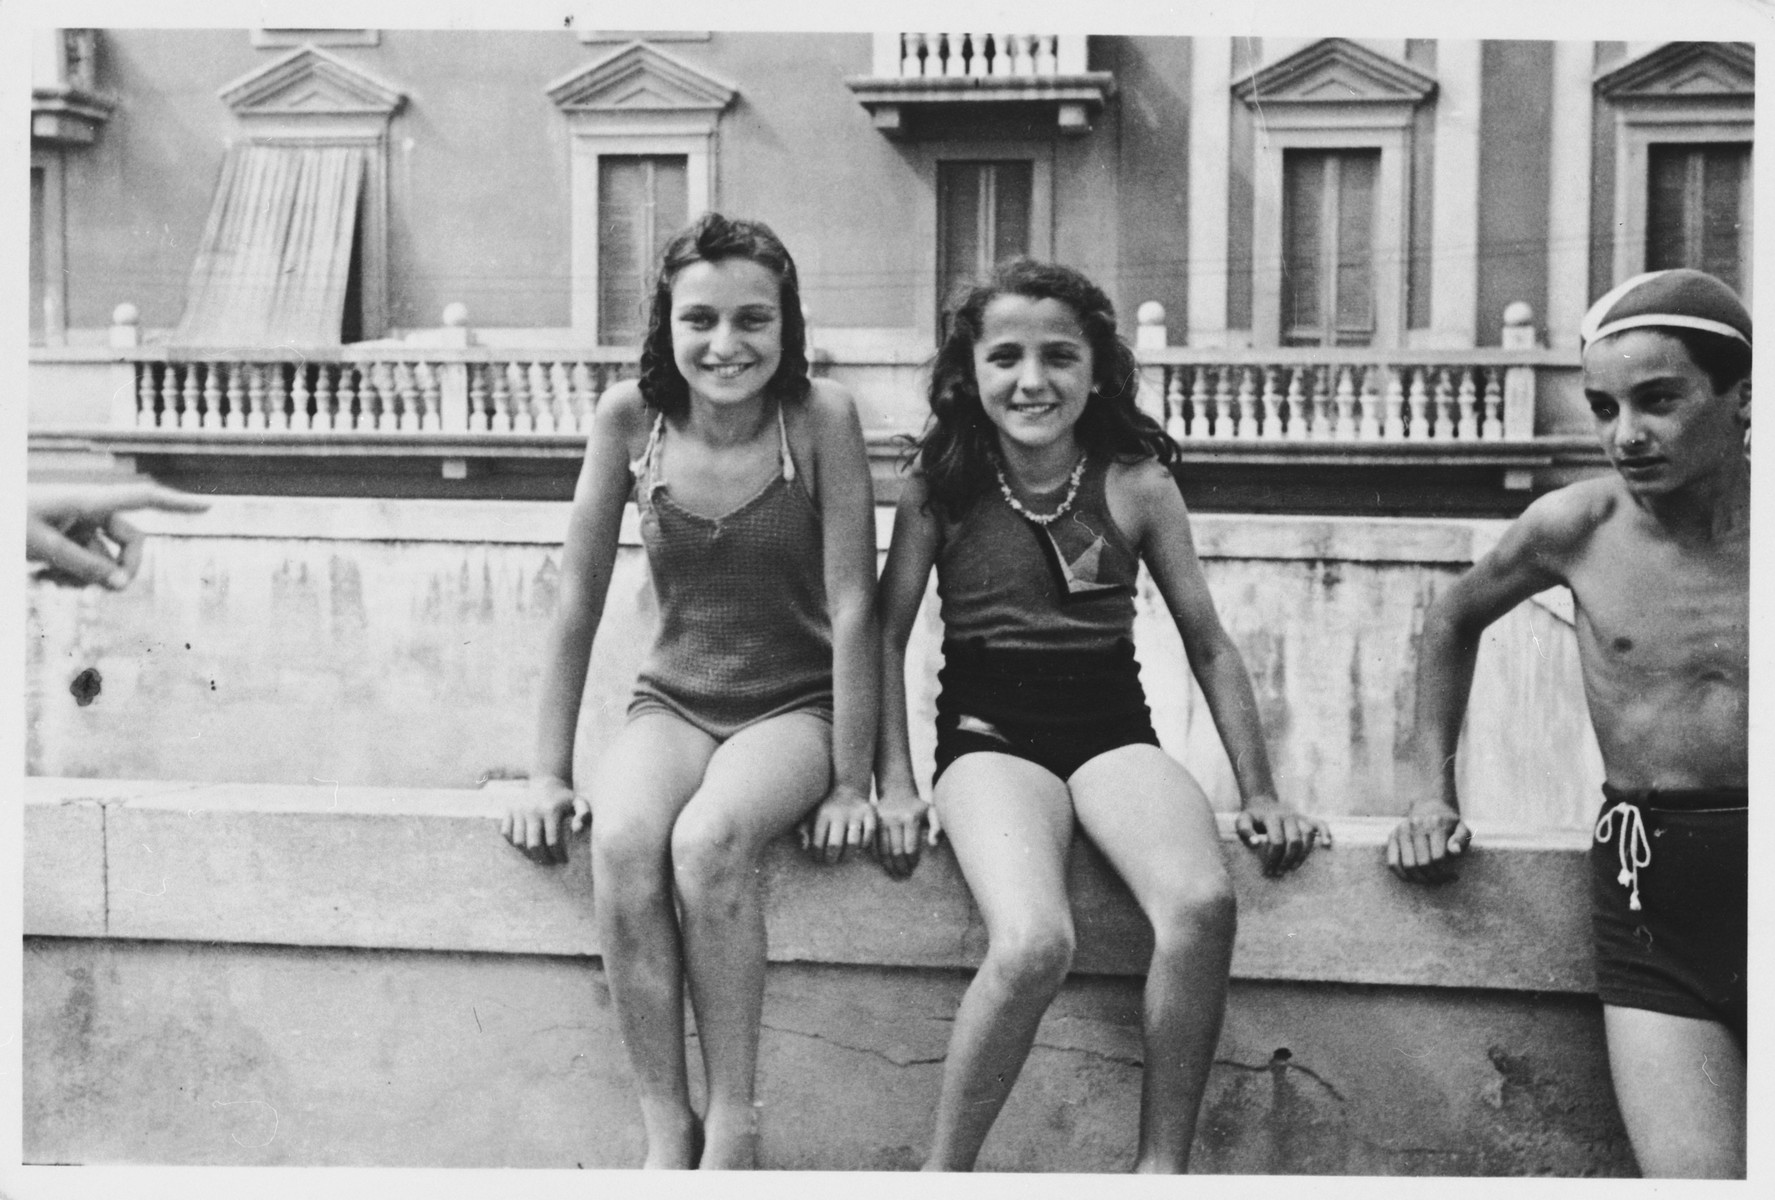 Mia Kaufman (right) poses sitting on a wall with a friend.